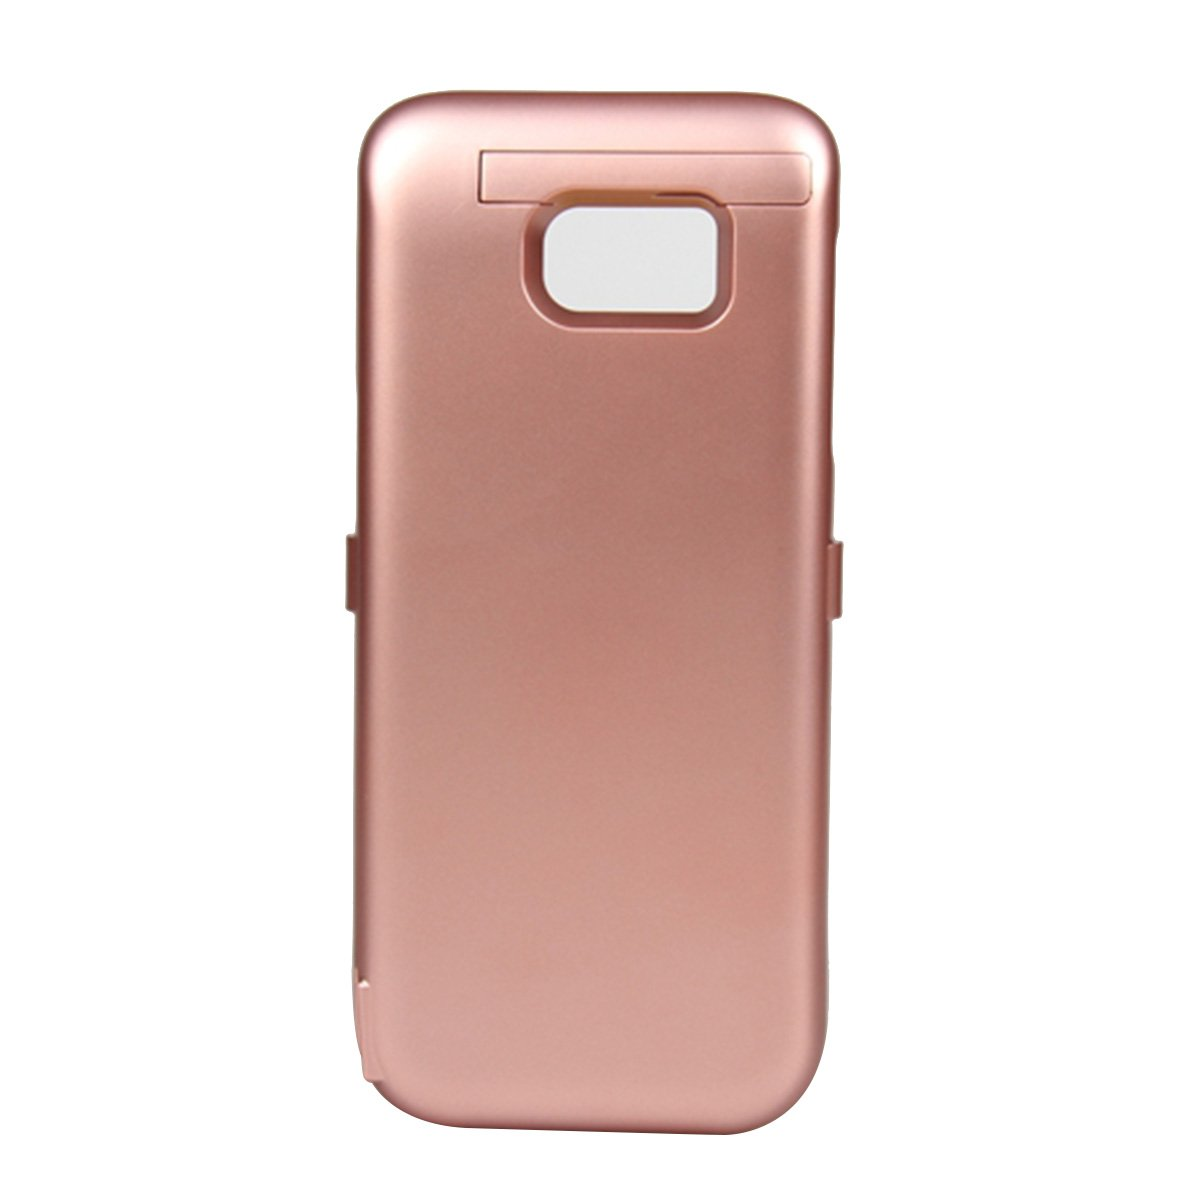 AICEDA Samsung Galaxy S7 Edge 6800mAh Battery Case, Rechargeable External Battery Portable Power Charger Protective Charging Case Replacement for Samsung Galaxy S7 Edge 6800mAh (Rose Gold)